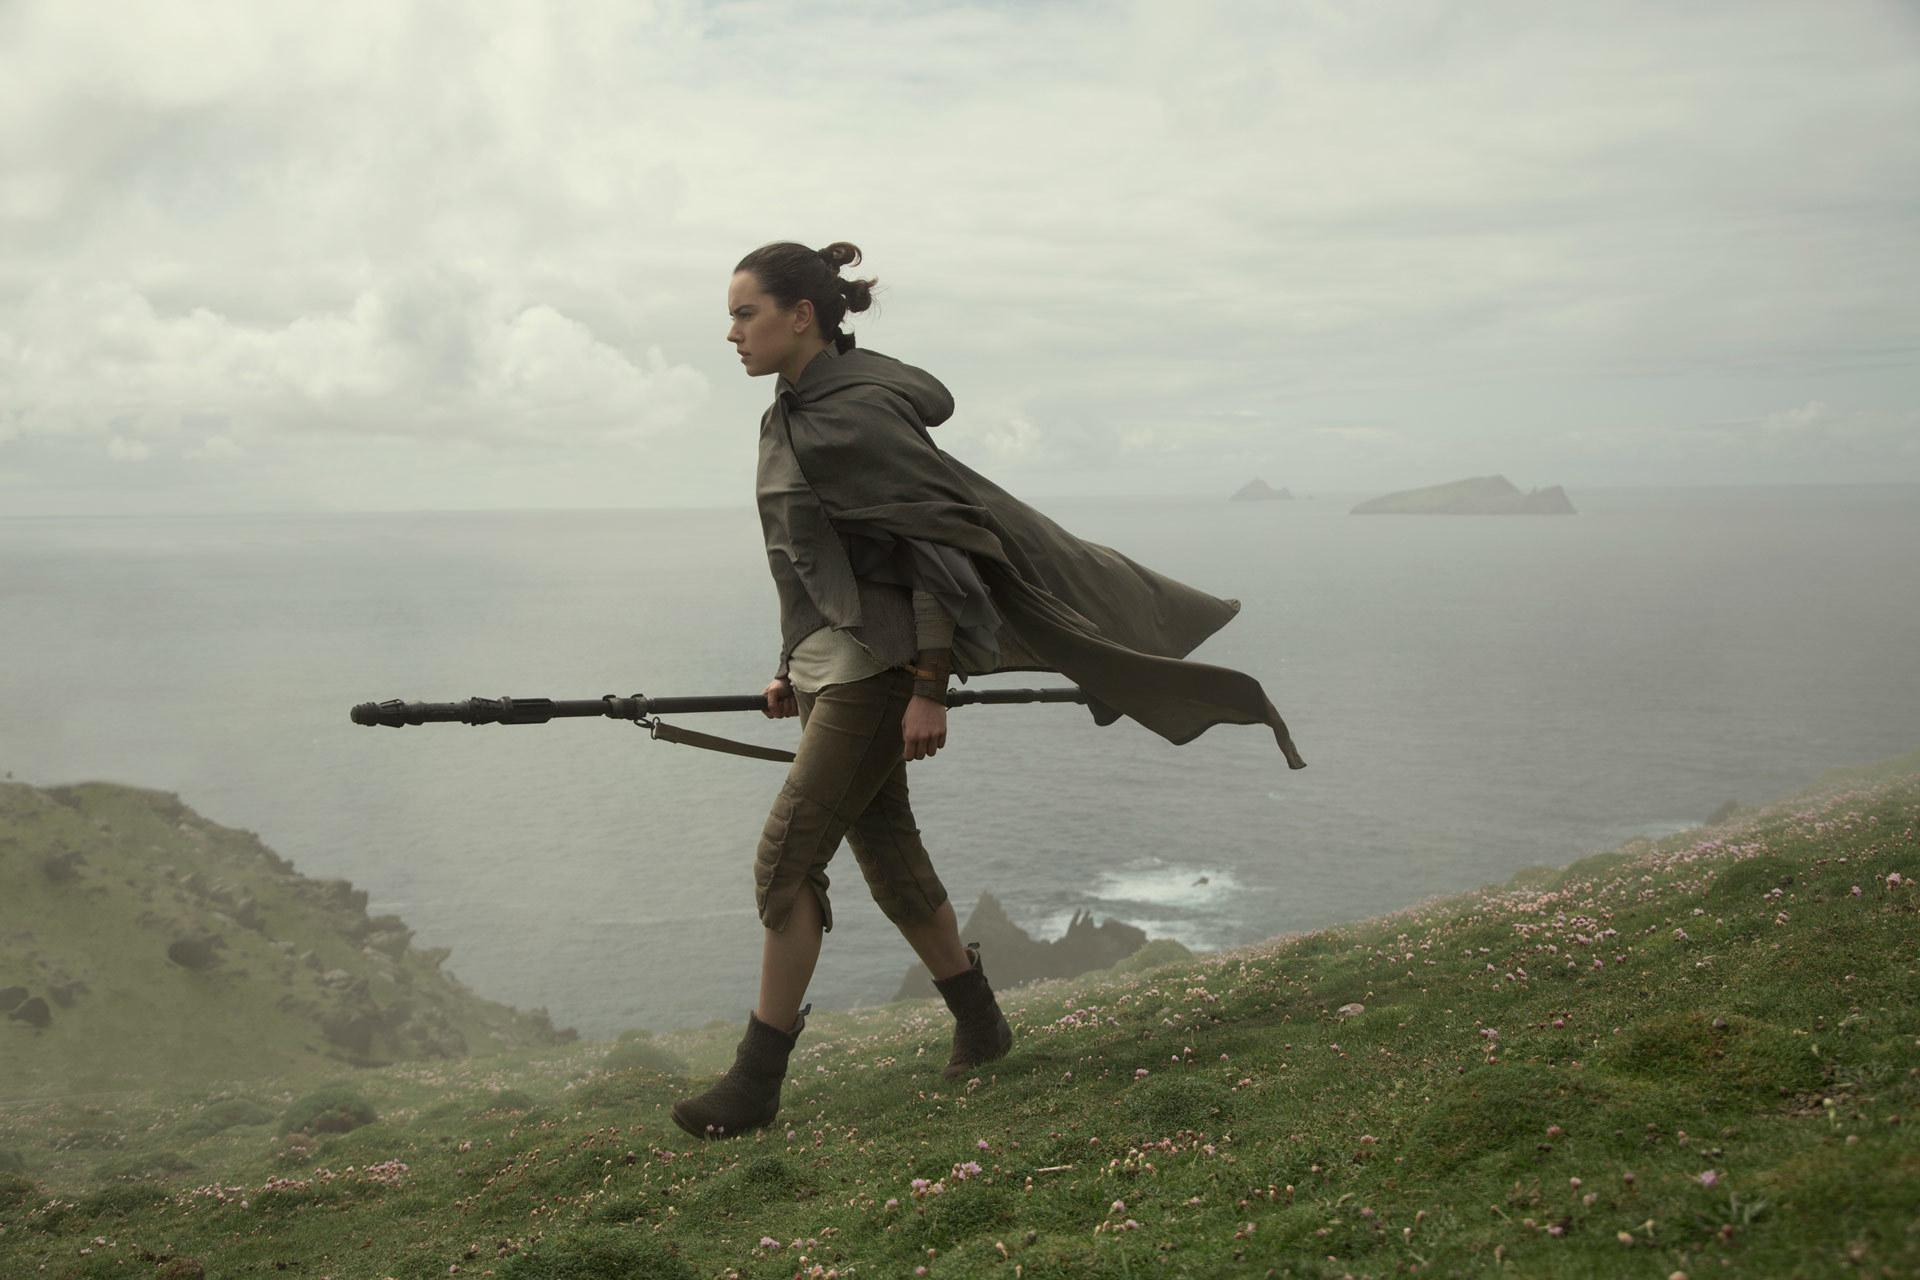 Star Wars: The Last Jedi Is a Good New Installment in the Star Wars Franchise